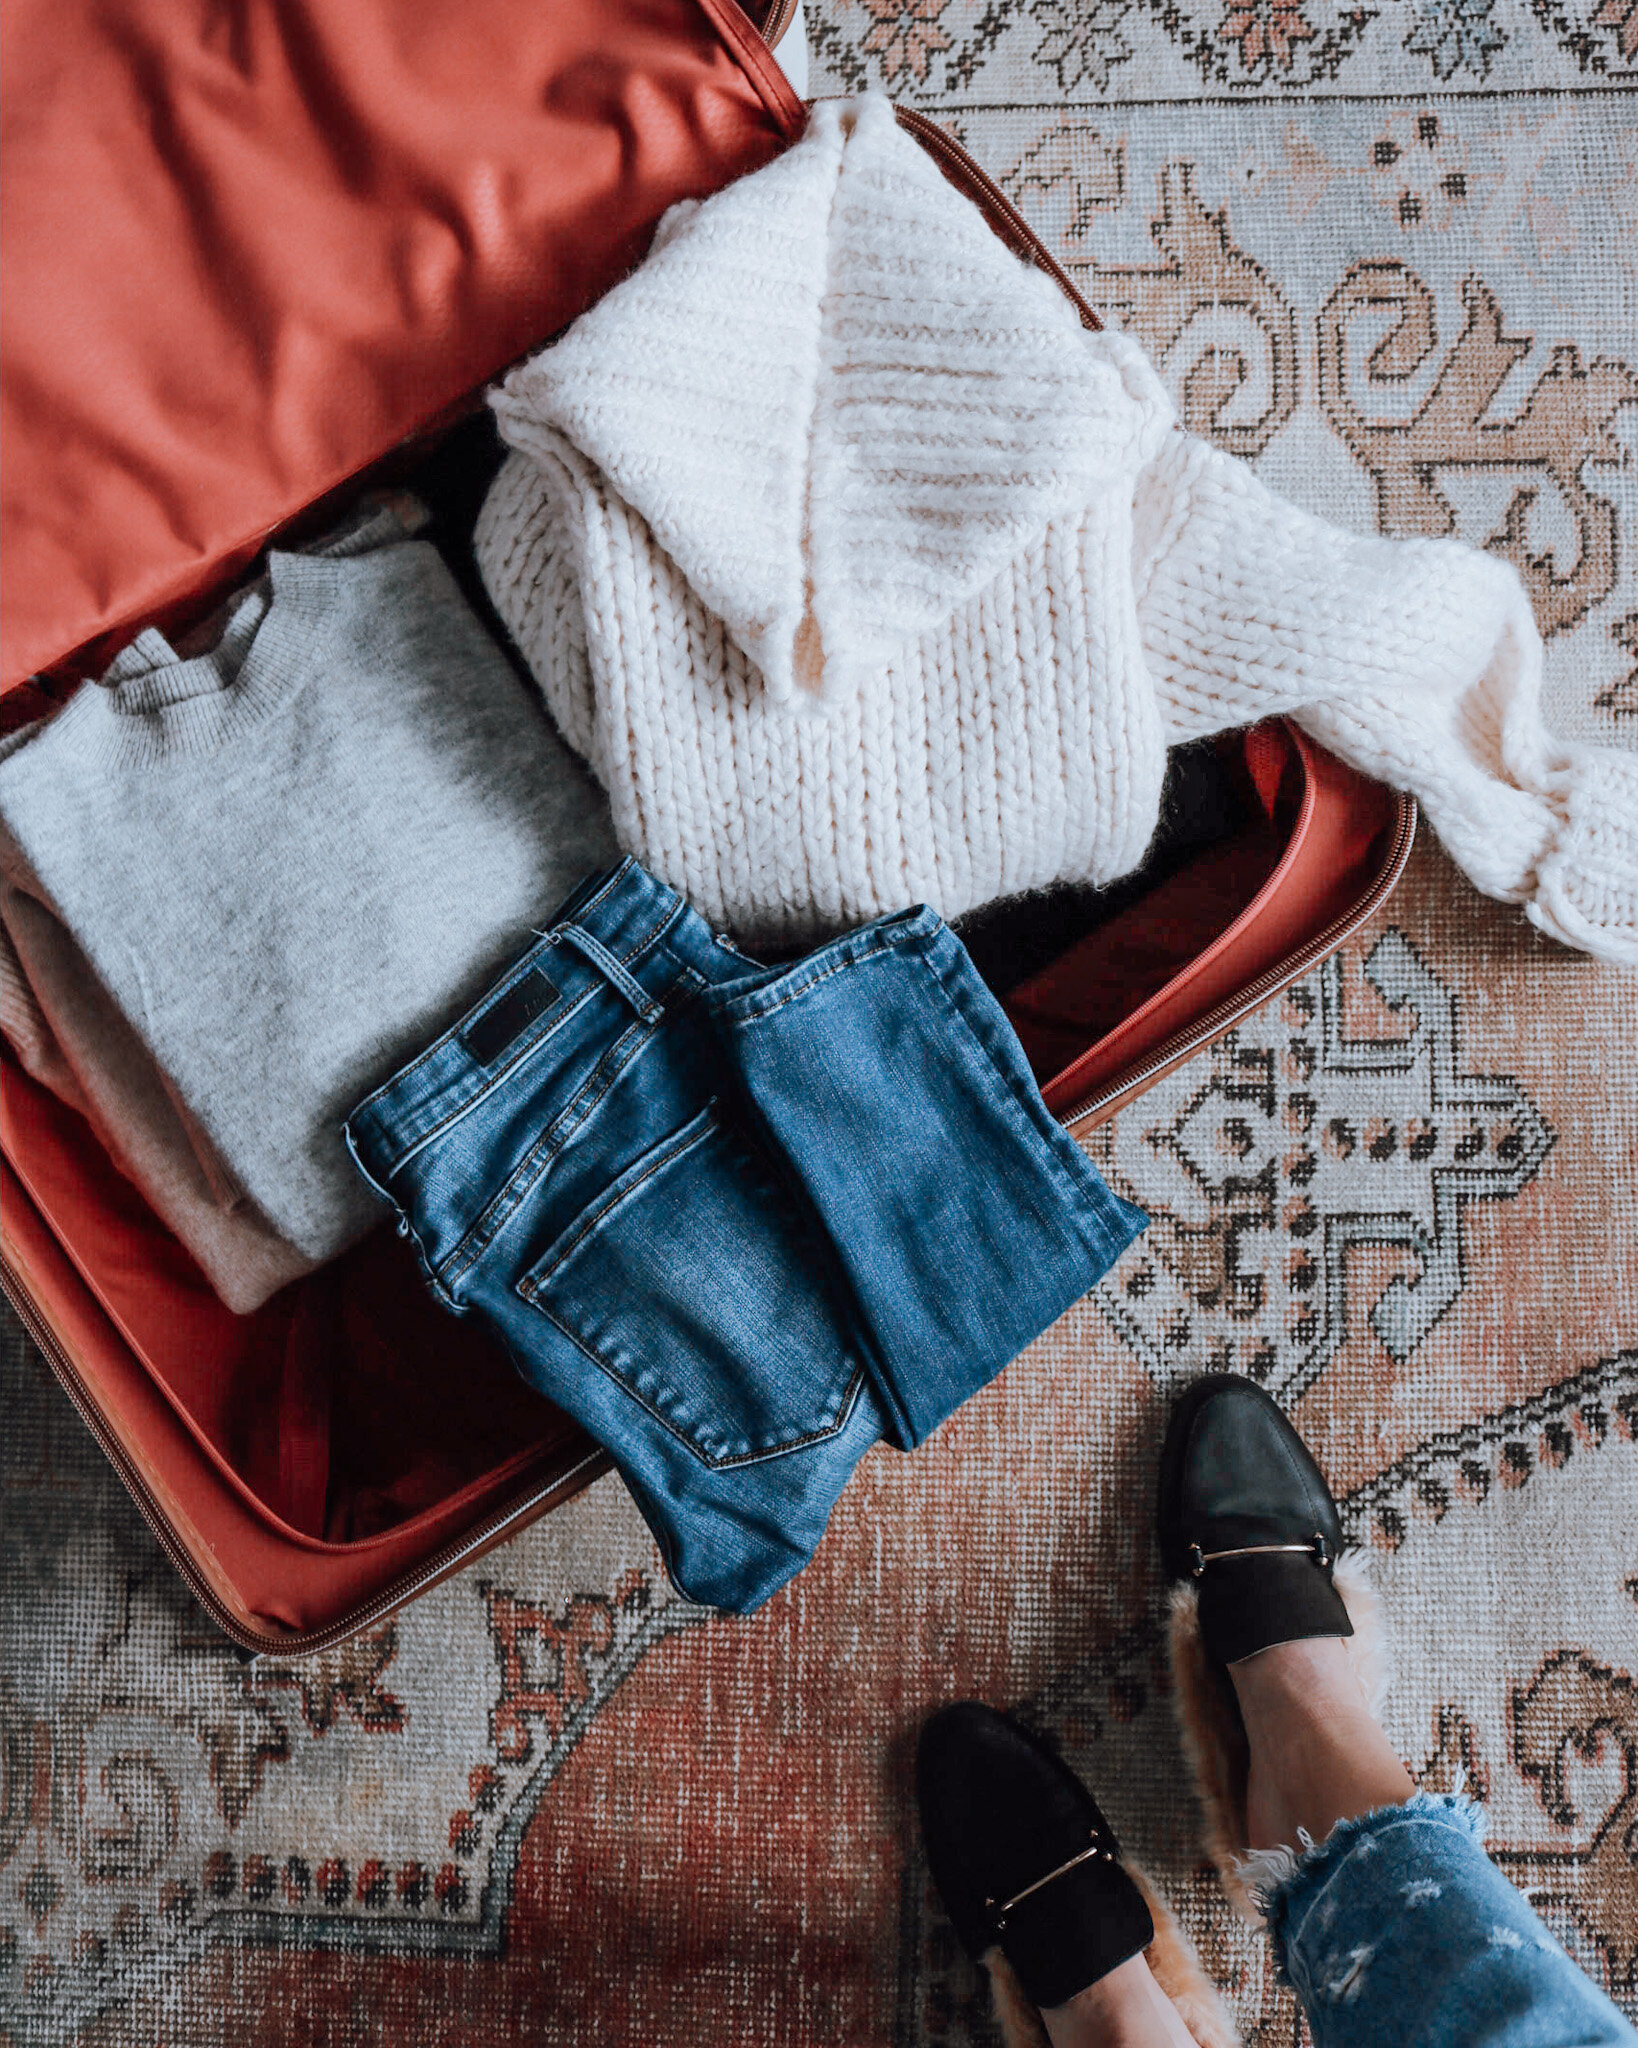 3 ESSENTIALS TO PACK FOR A WINTER WEEKEND GETAWAY